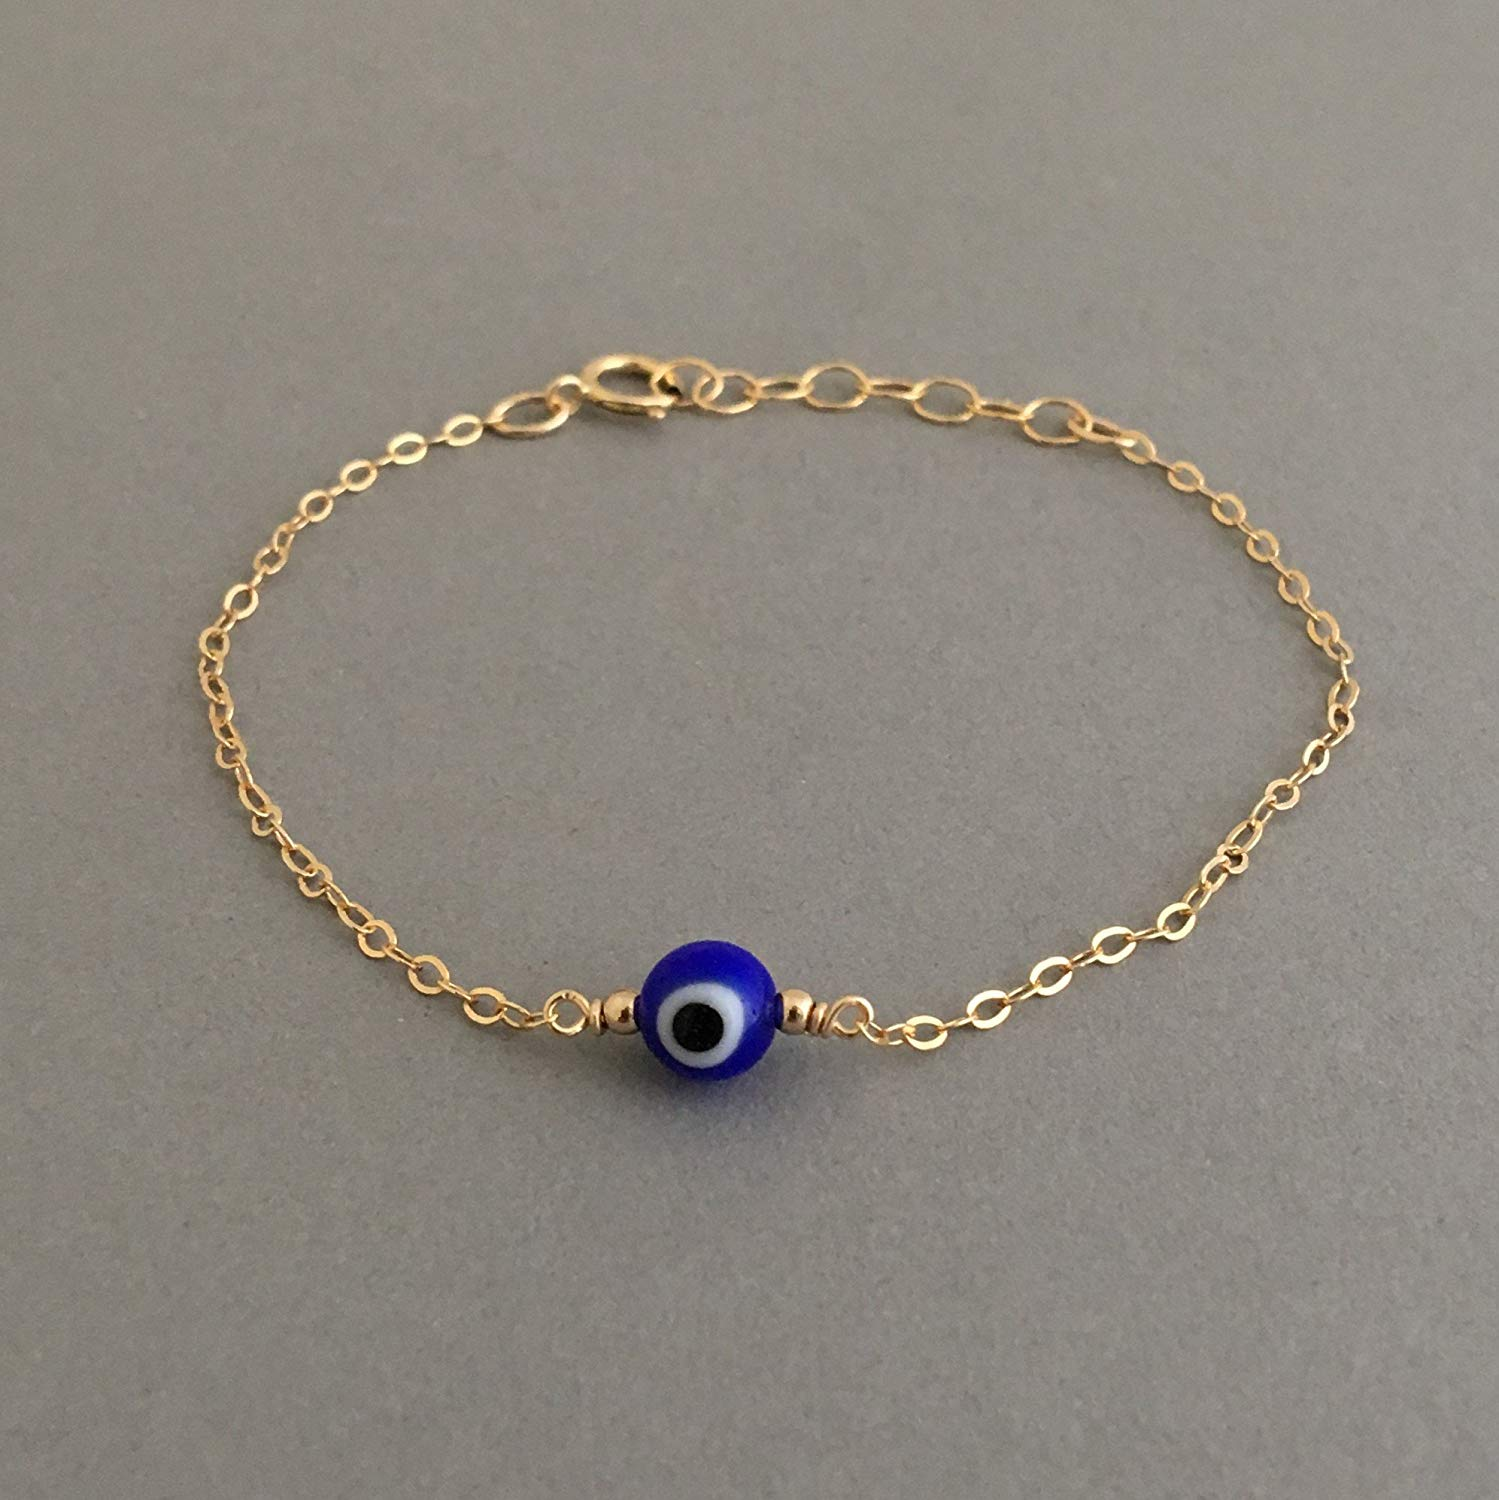 Round Blue Evil Eye Bracelet available in gold and silver